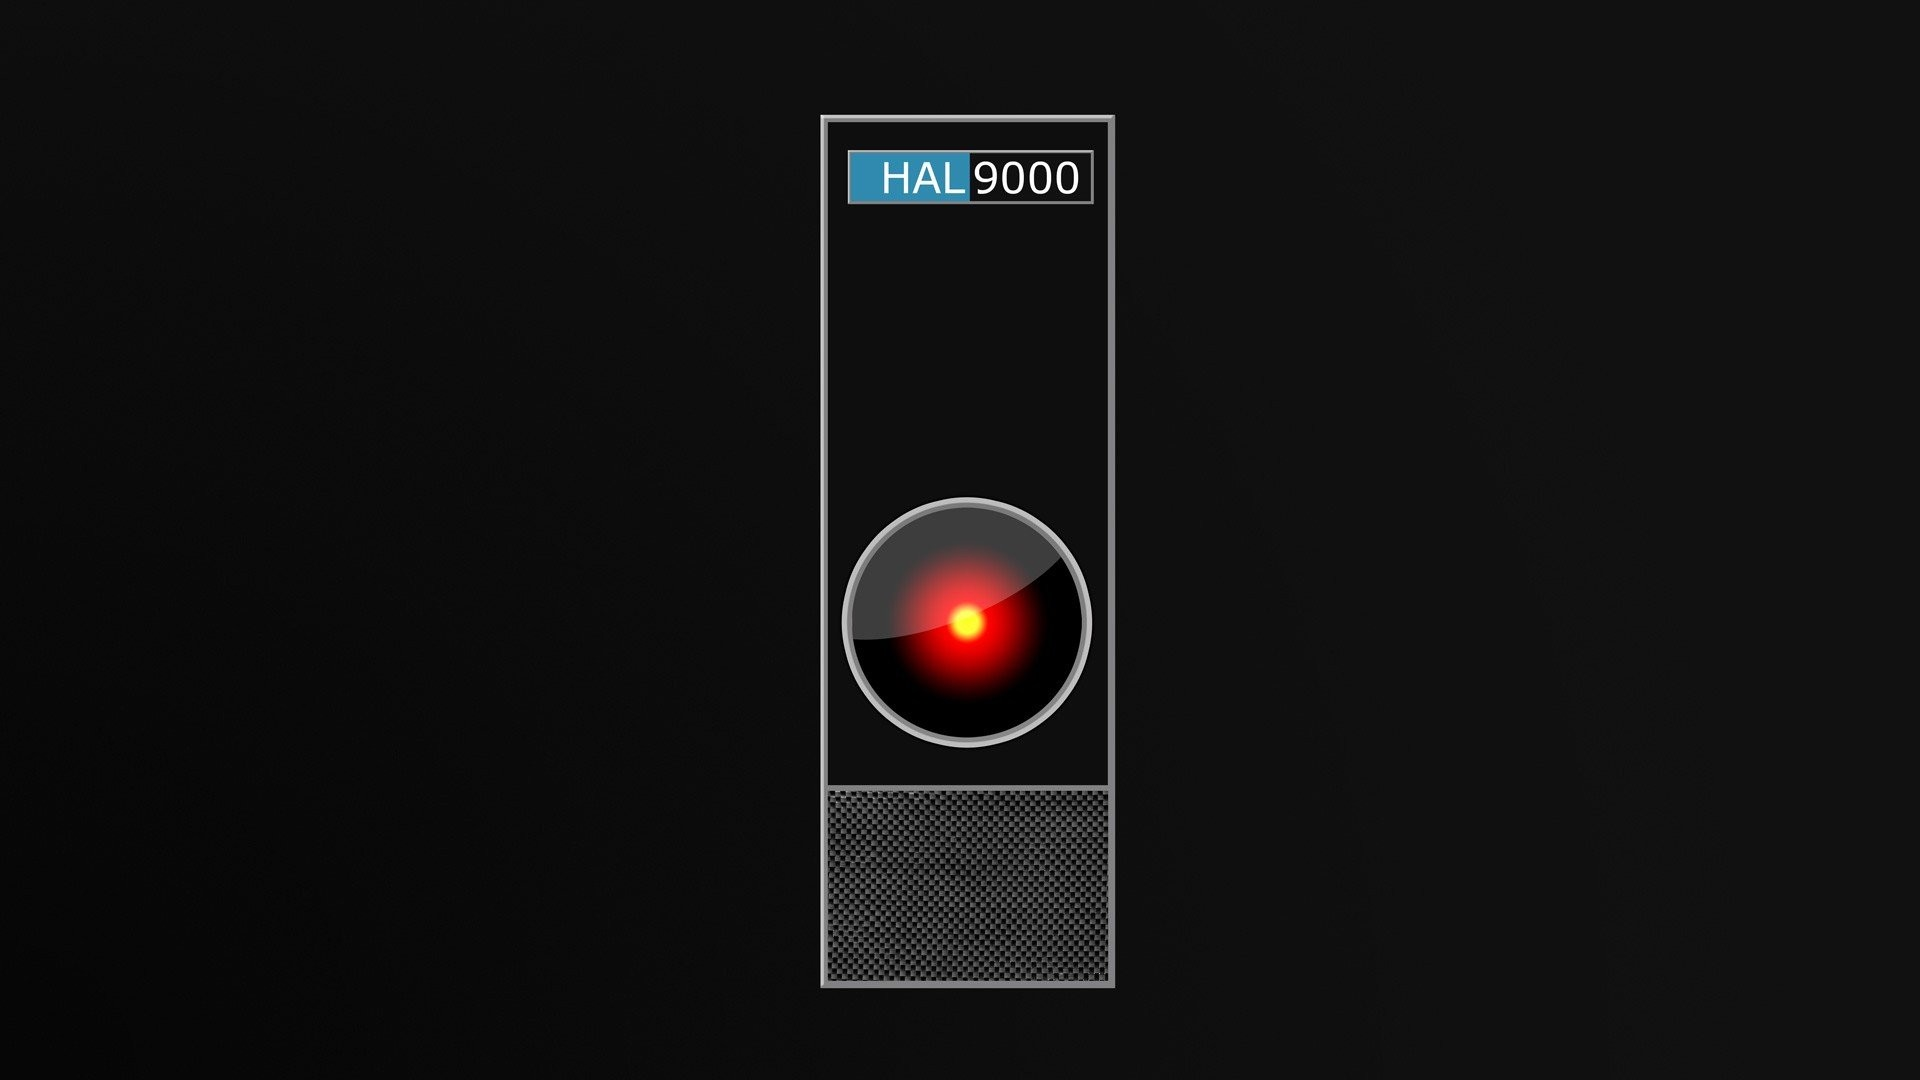 Hal 9000 Iphone Wallpaper 66 Images